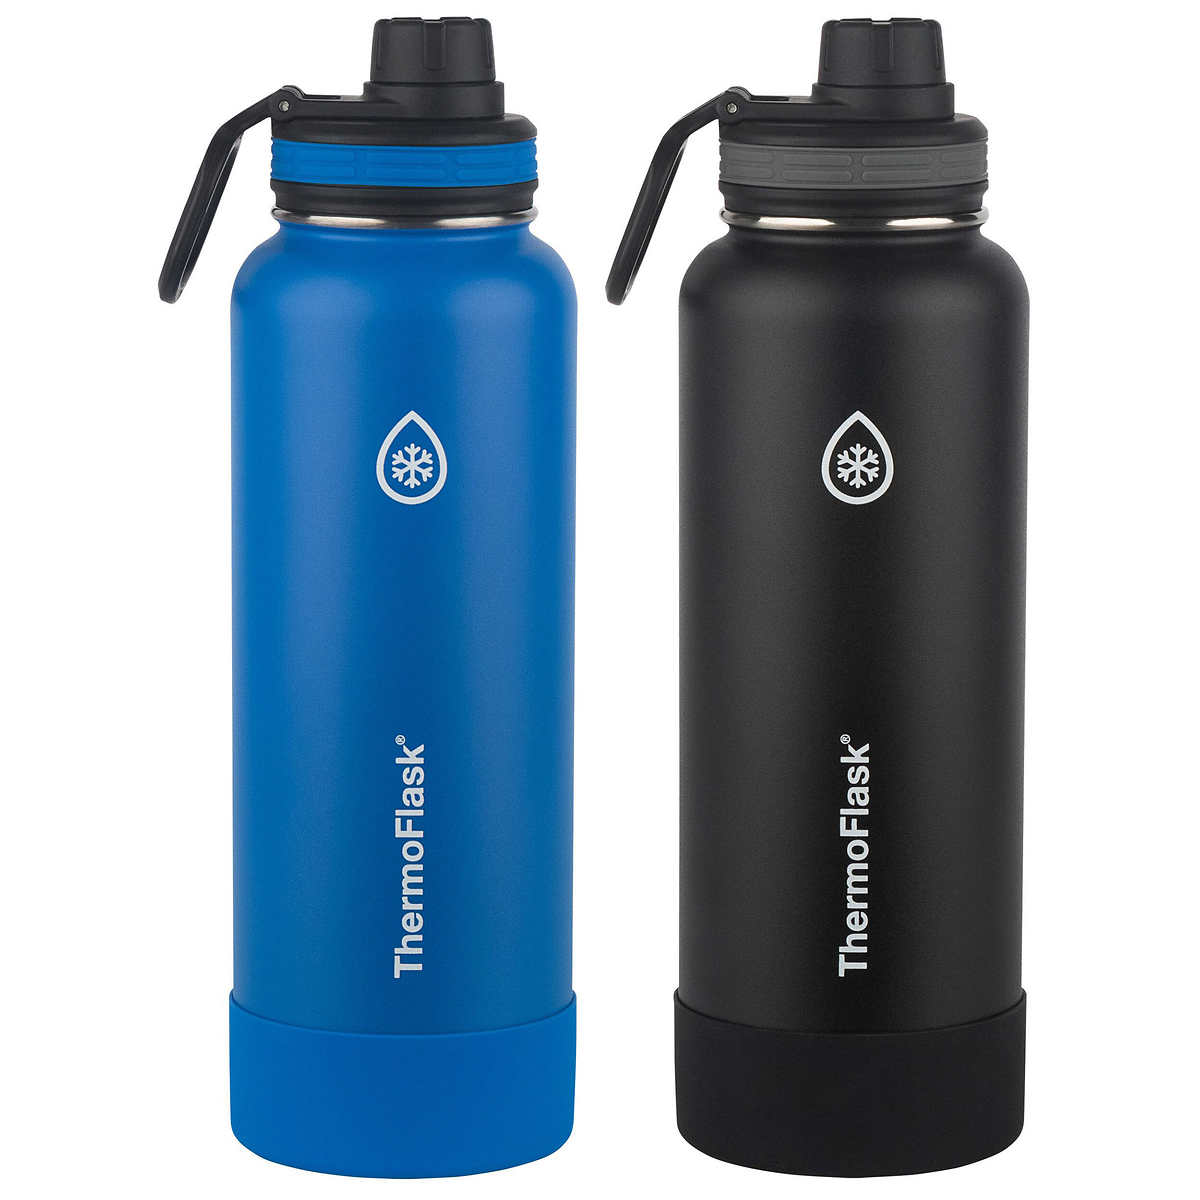 339c7ff5401 Thermoflask Stainless Steel 40 oz Water Bottle, 2-piece Set